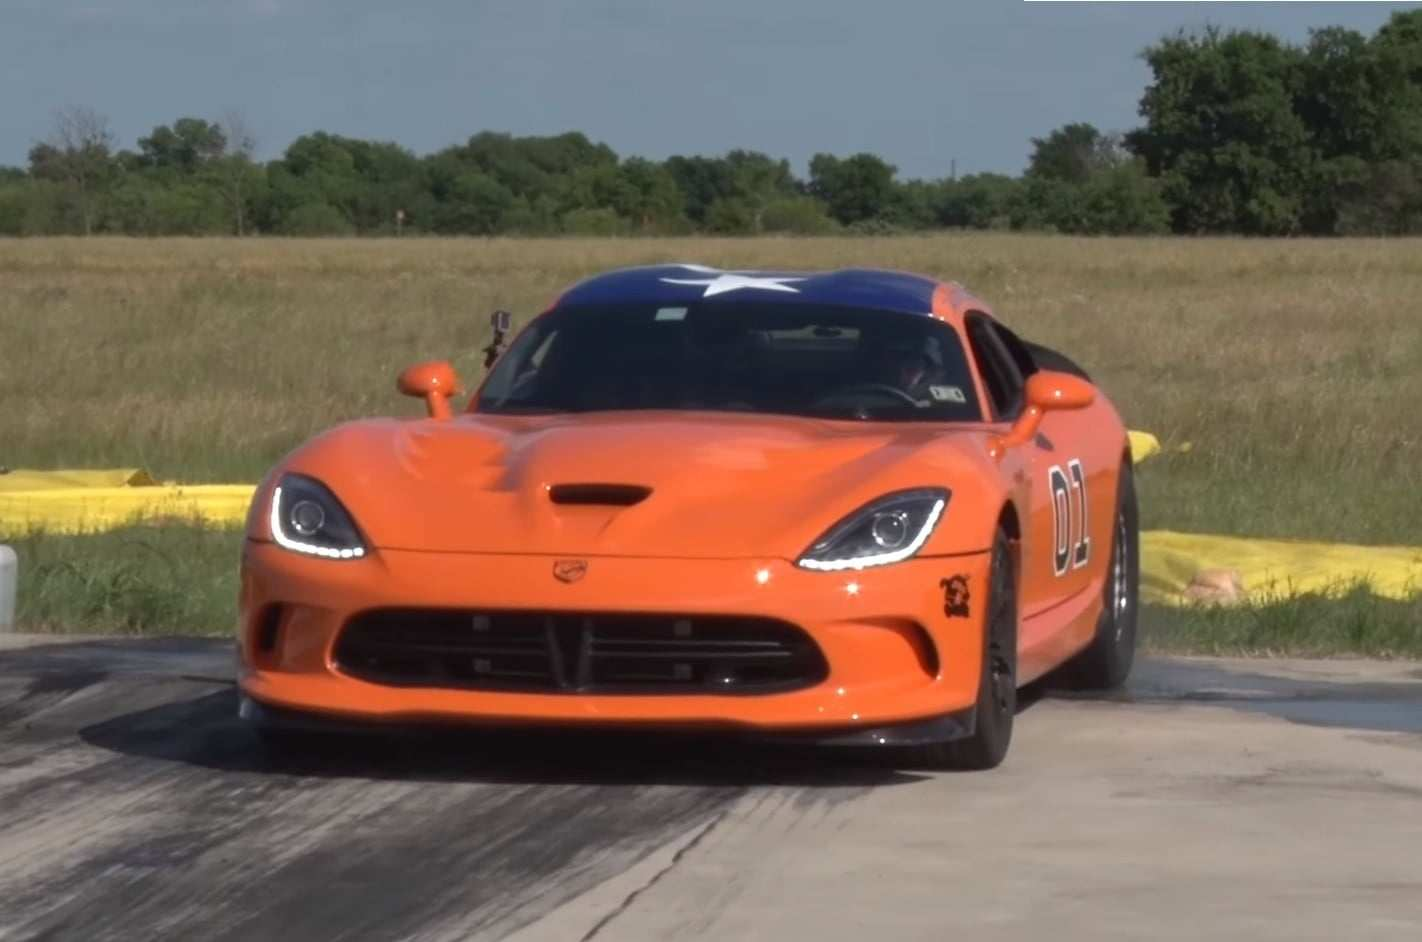 55 The Best 2020 Dodge Viper Youtube Images